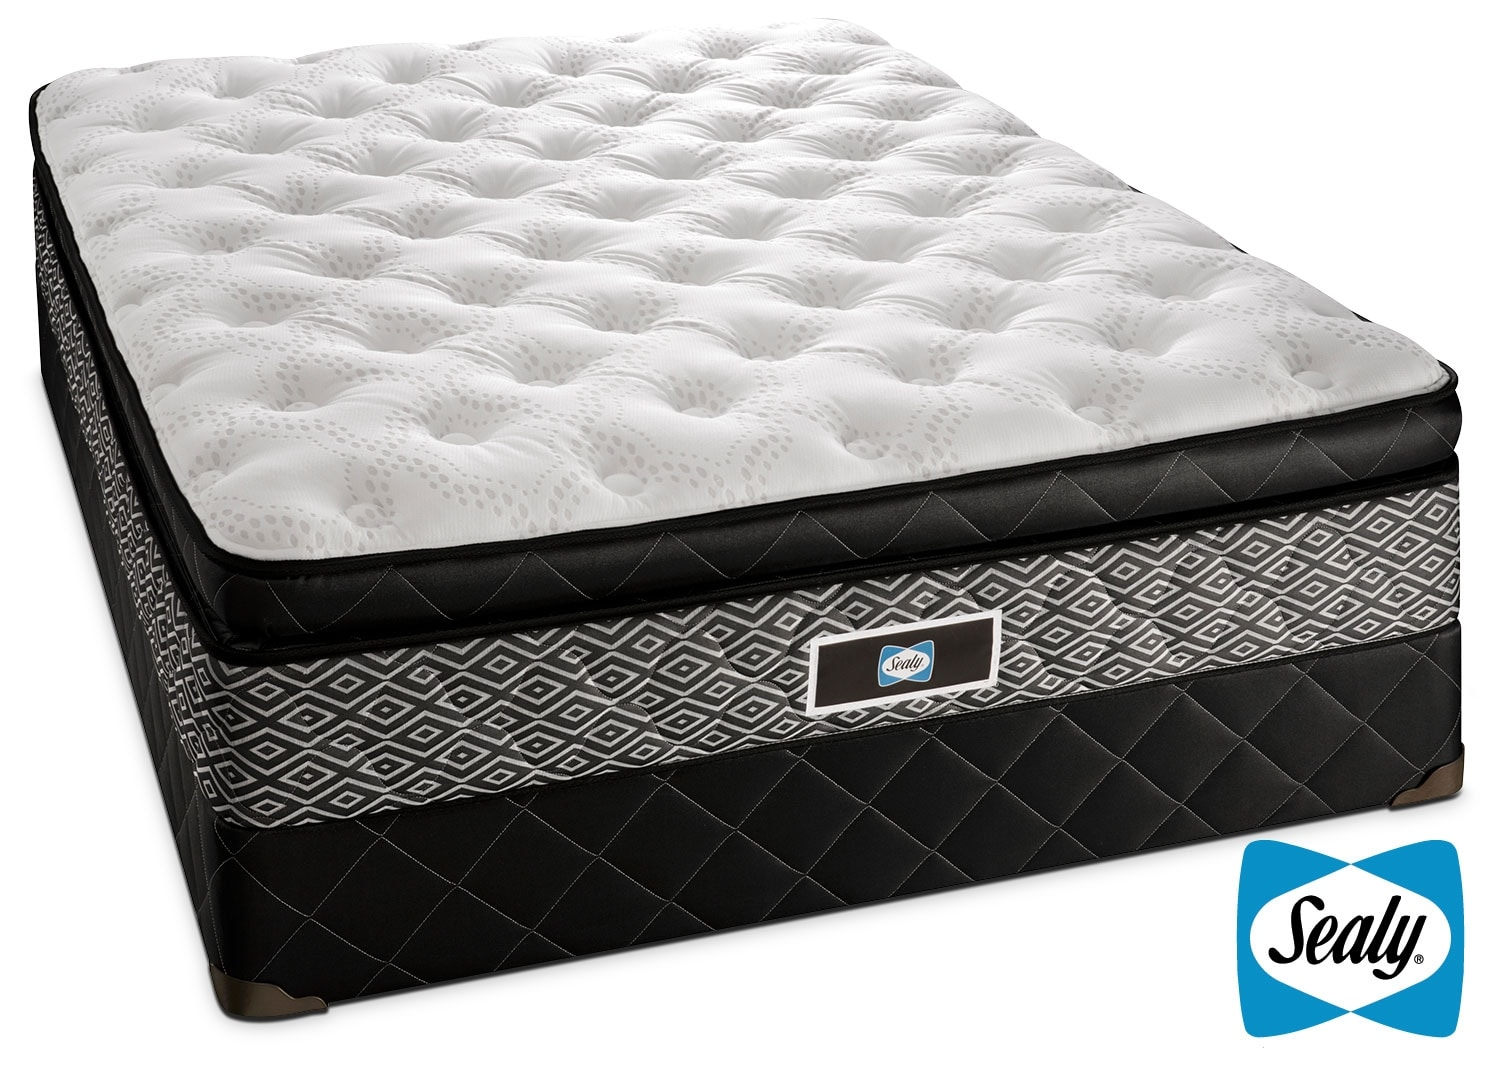 Sealy echo plush queen mattress boxspring set leon 39 s Queen mattress sets sale